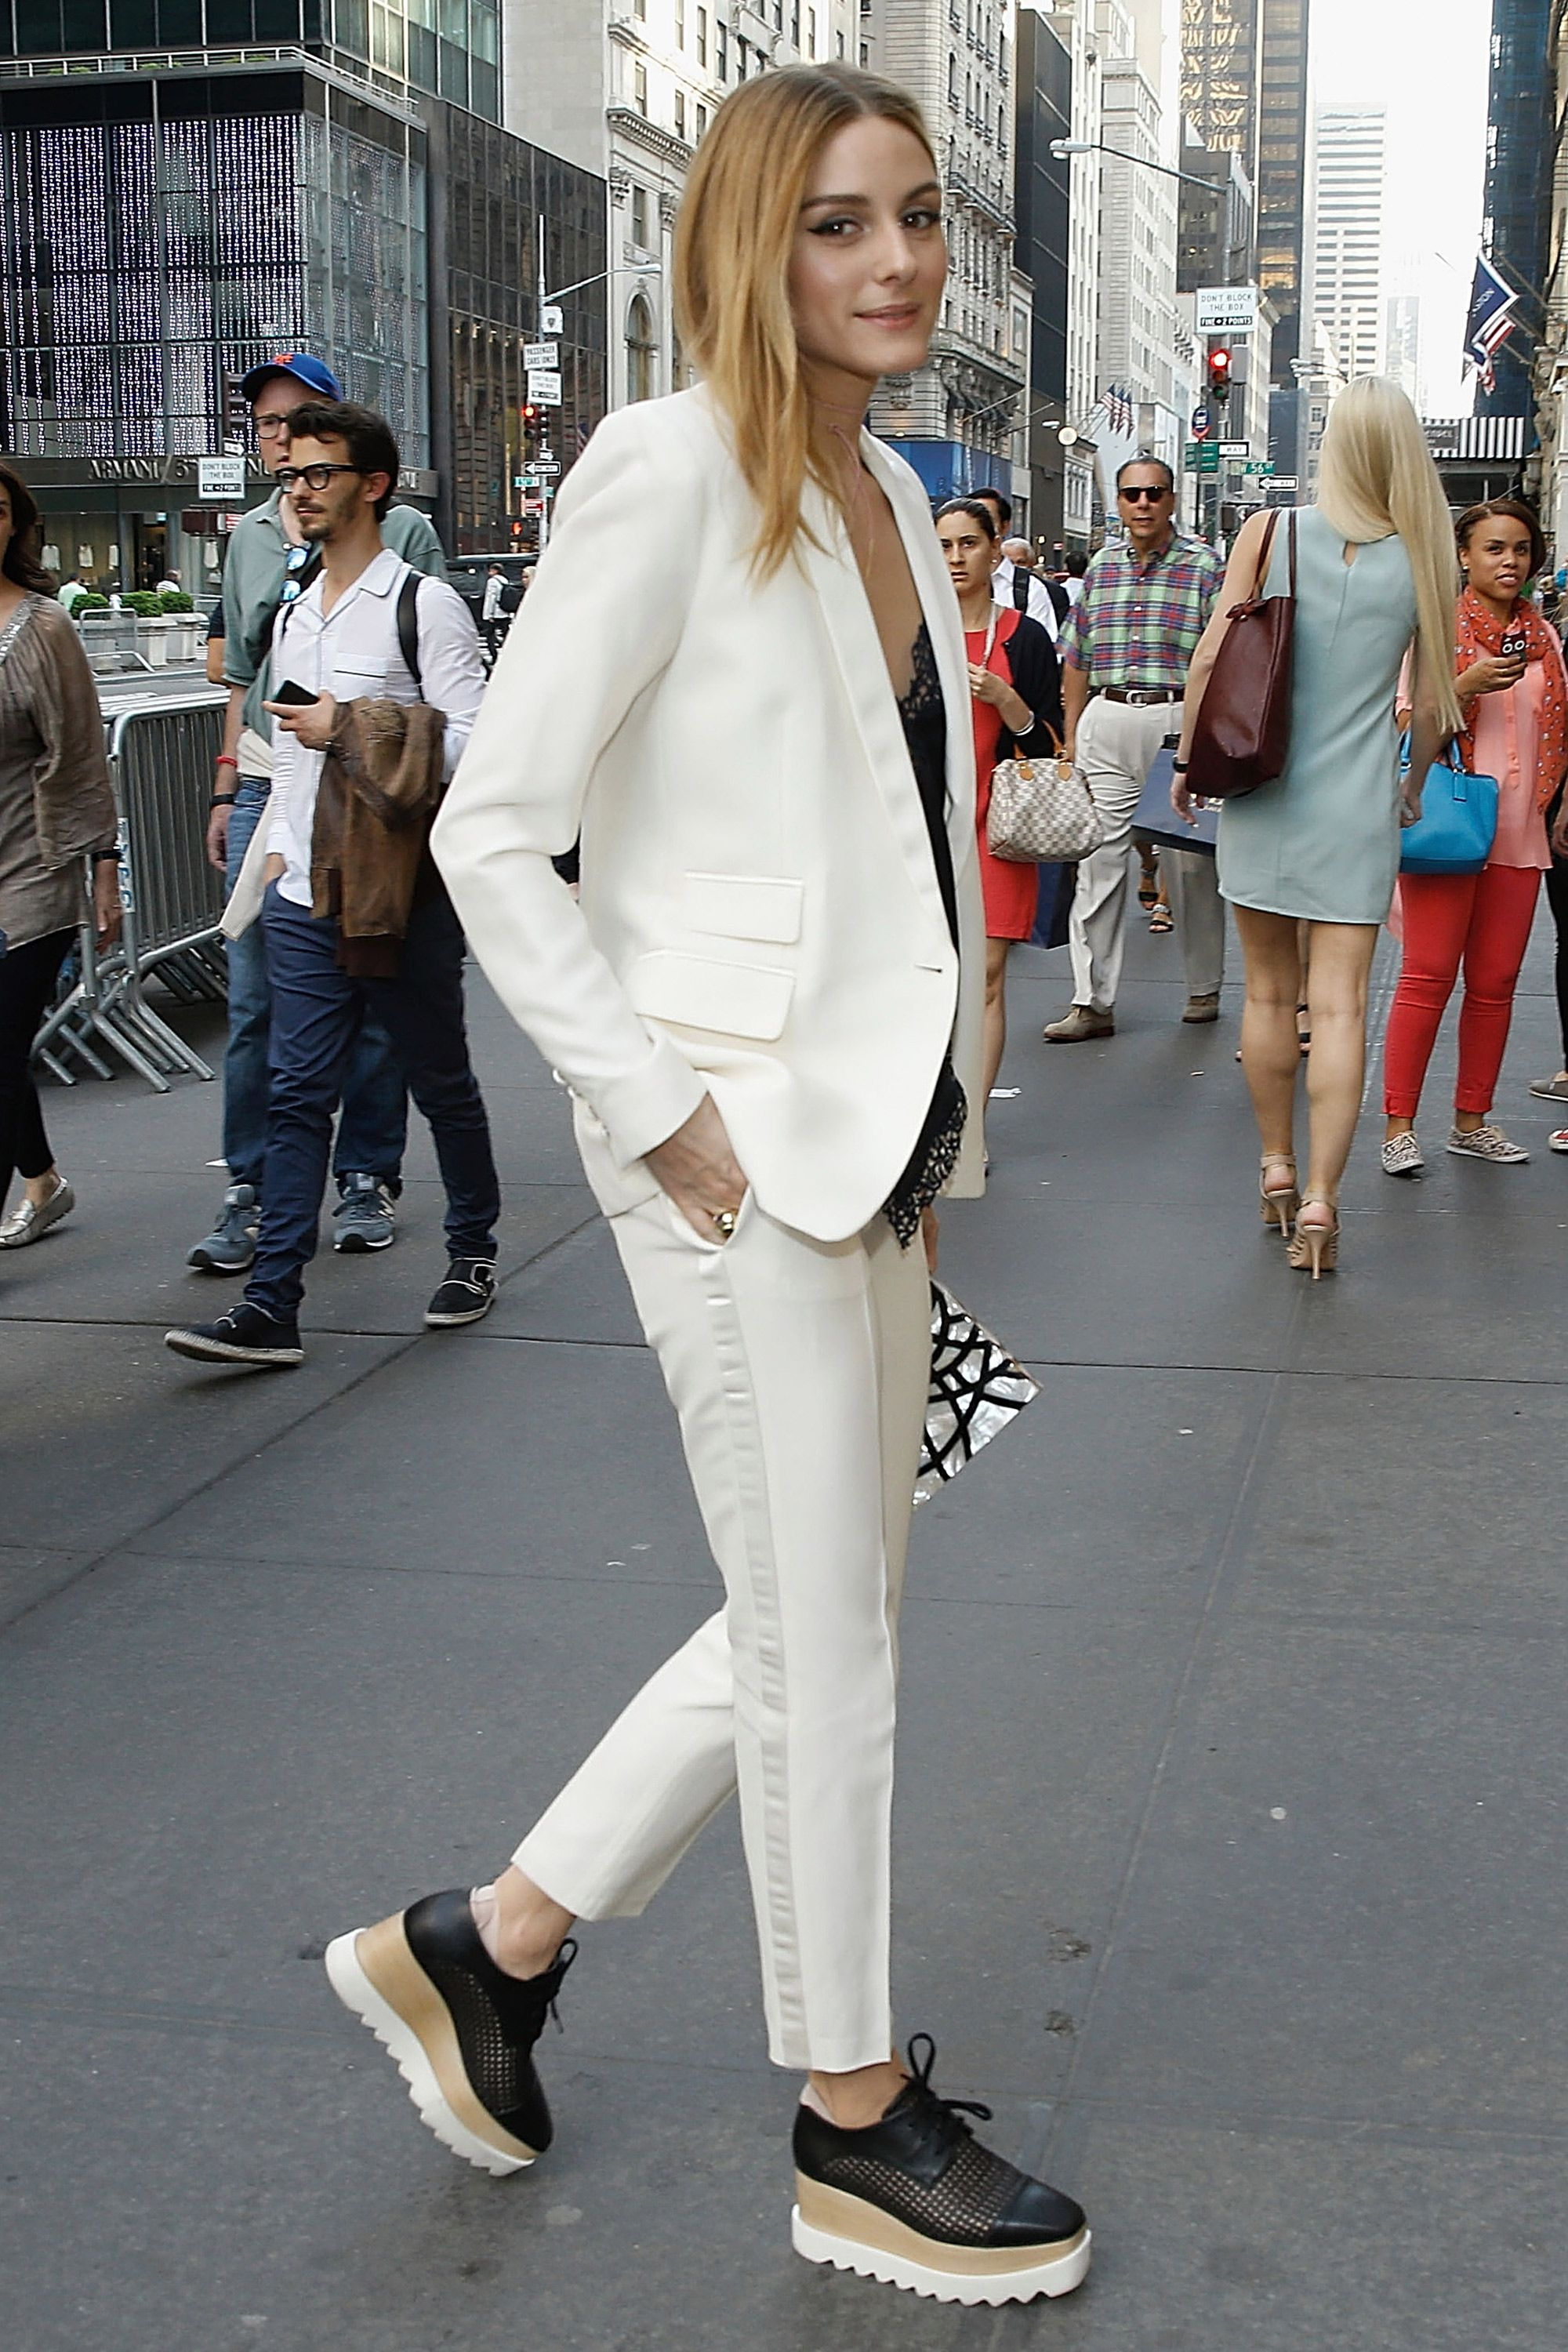 ee79cef7ee7184 25 May 2016 - Olivia Palermo was spotted in New York City wearing a white  suit